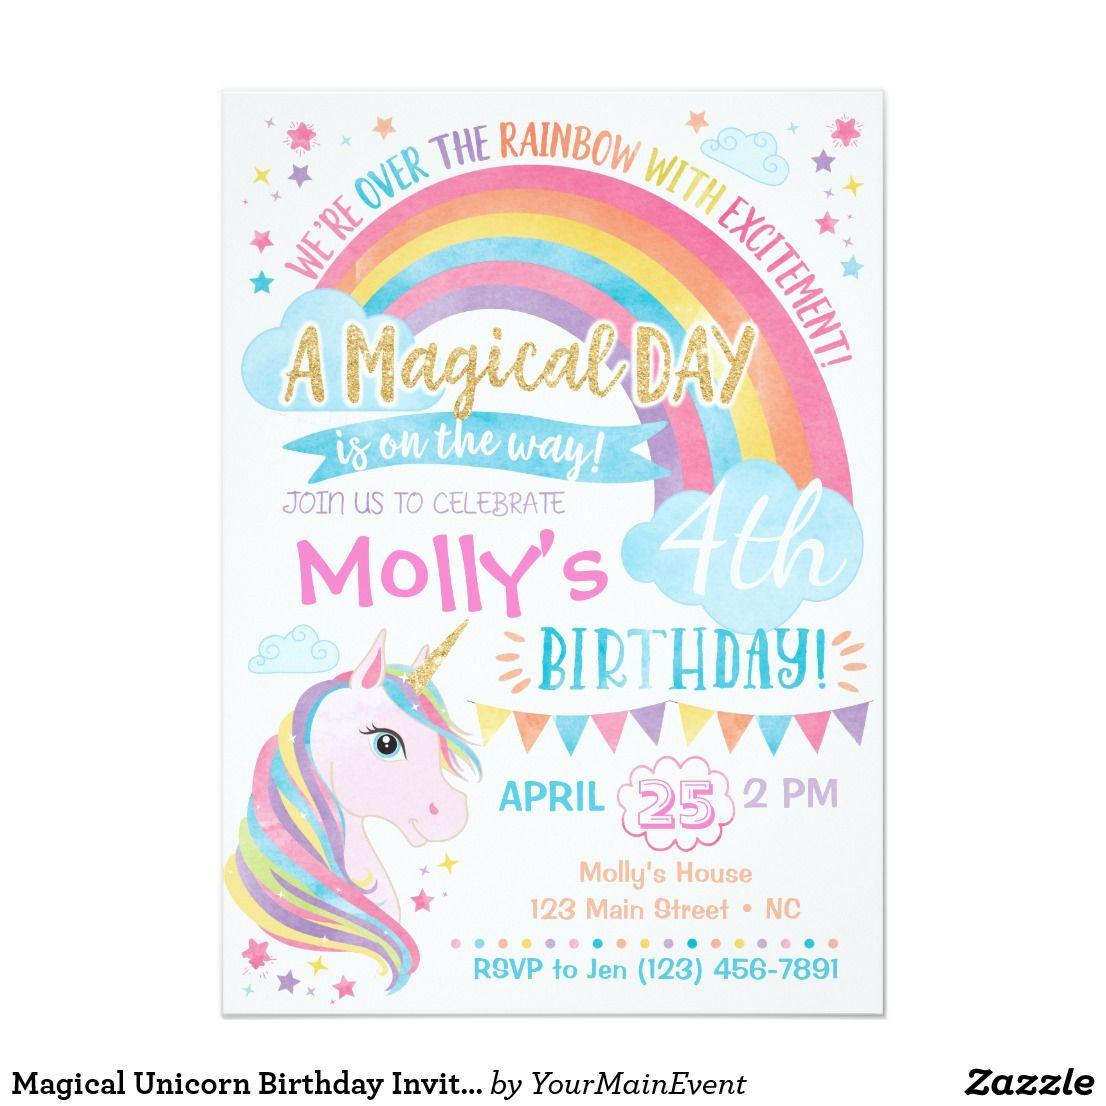 Magical Unicorn Birthday Invitation Rainbow Invite For Party Theme Ad